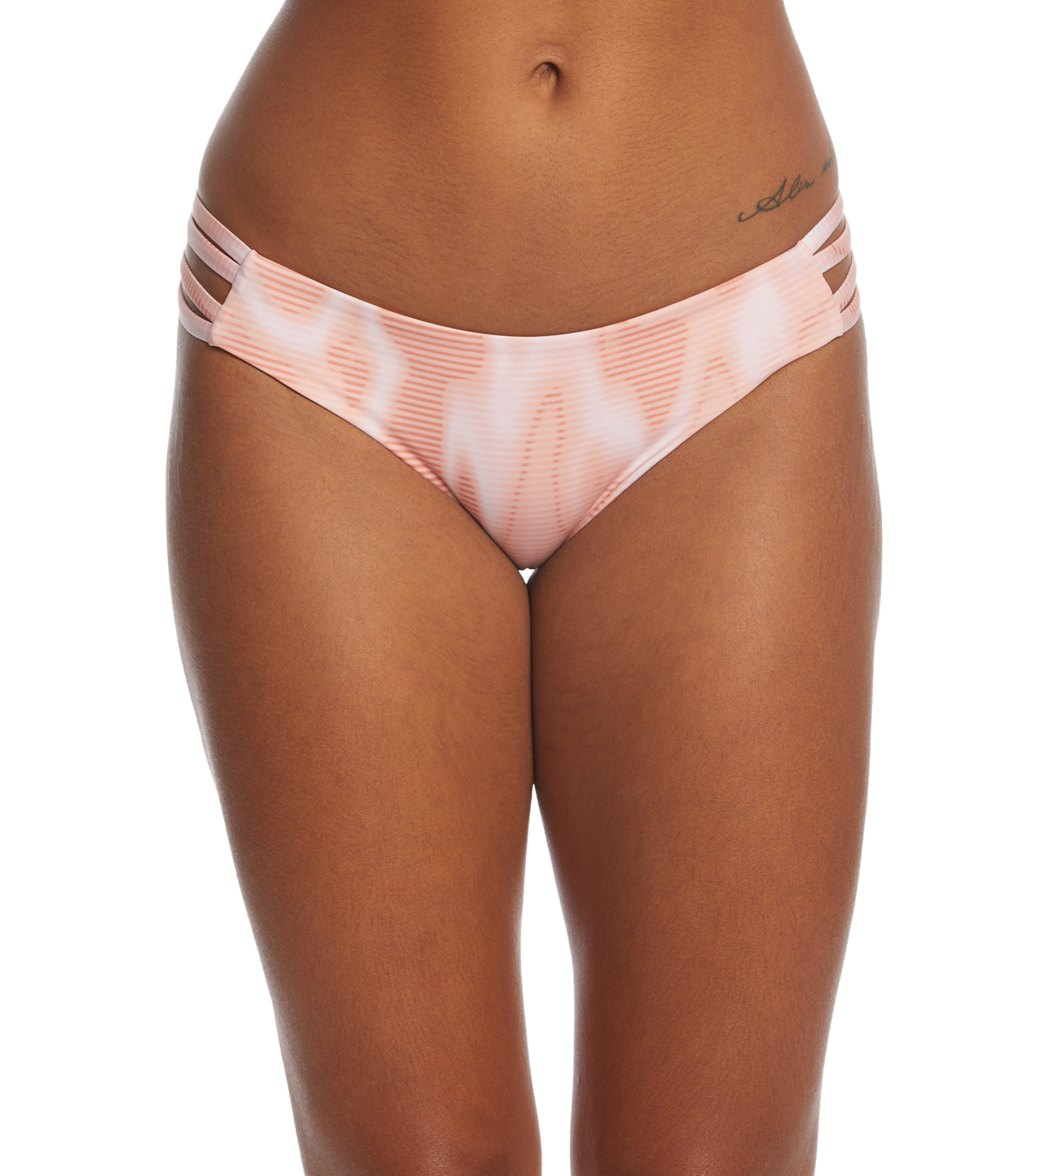 040ccdf1a35 Hurley Women's Quick Dry Max Waves Bikini Bottom at SwimOutlet.com - Free  Shipping